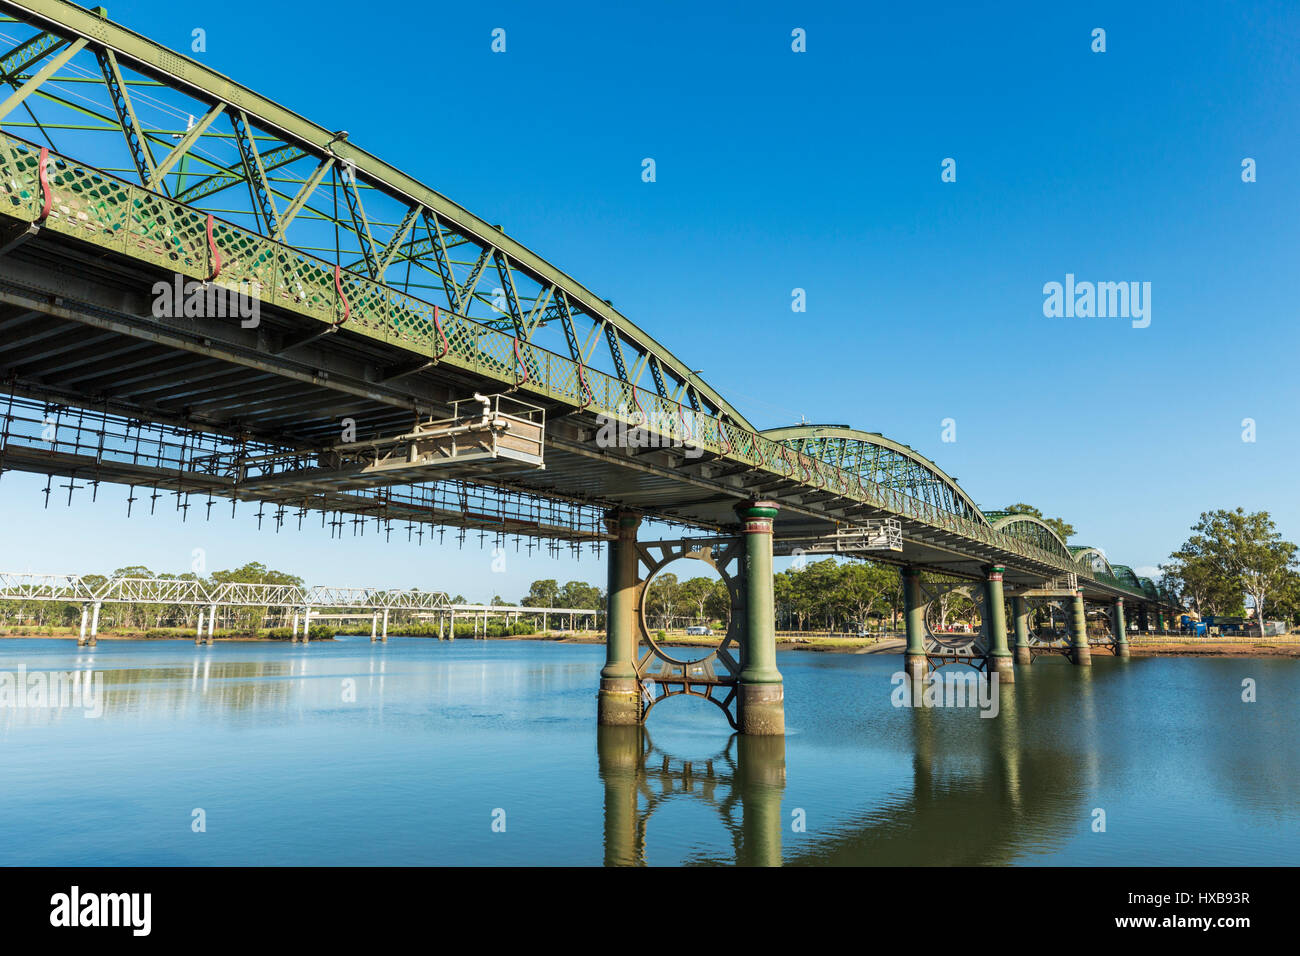 The heritage-listed Burnett Bridge.  Bundaberg, Queensland, Australia - Stock Image